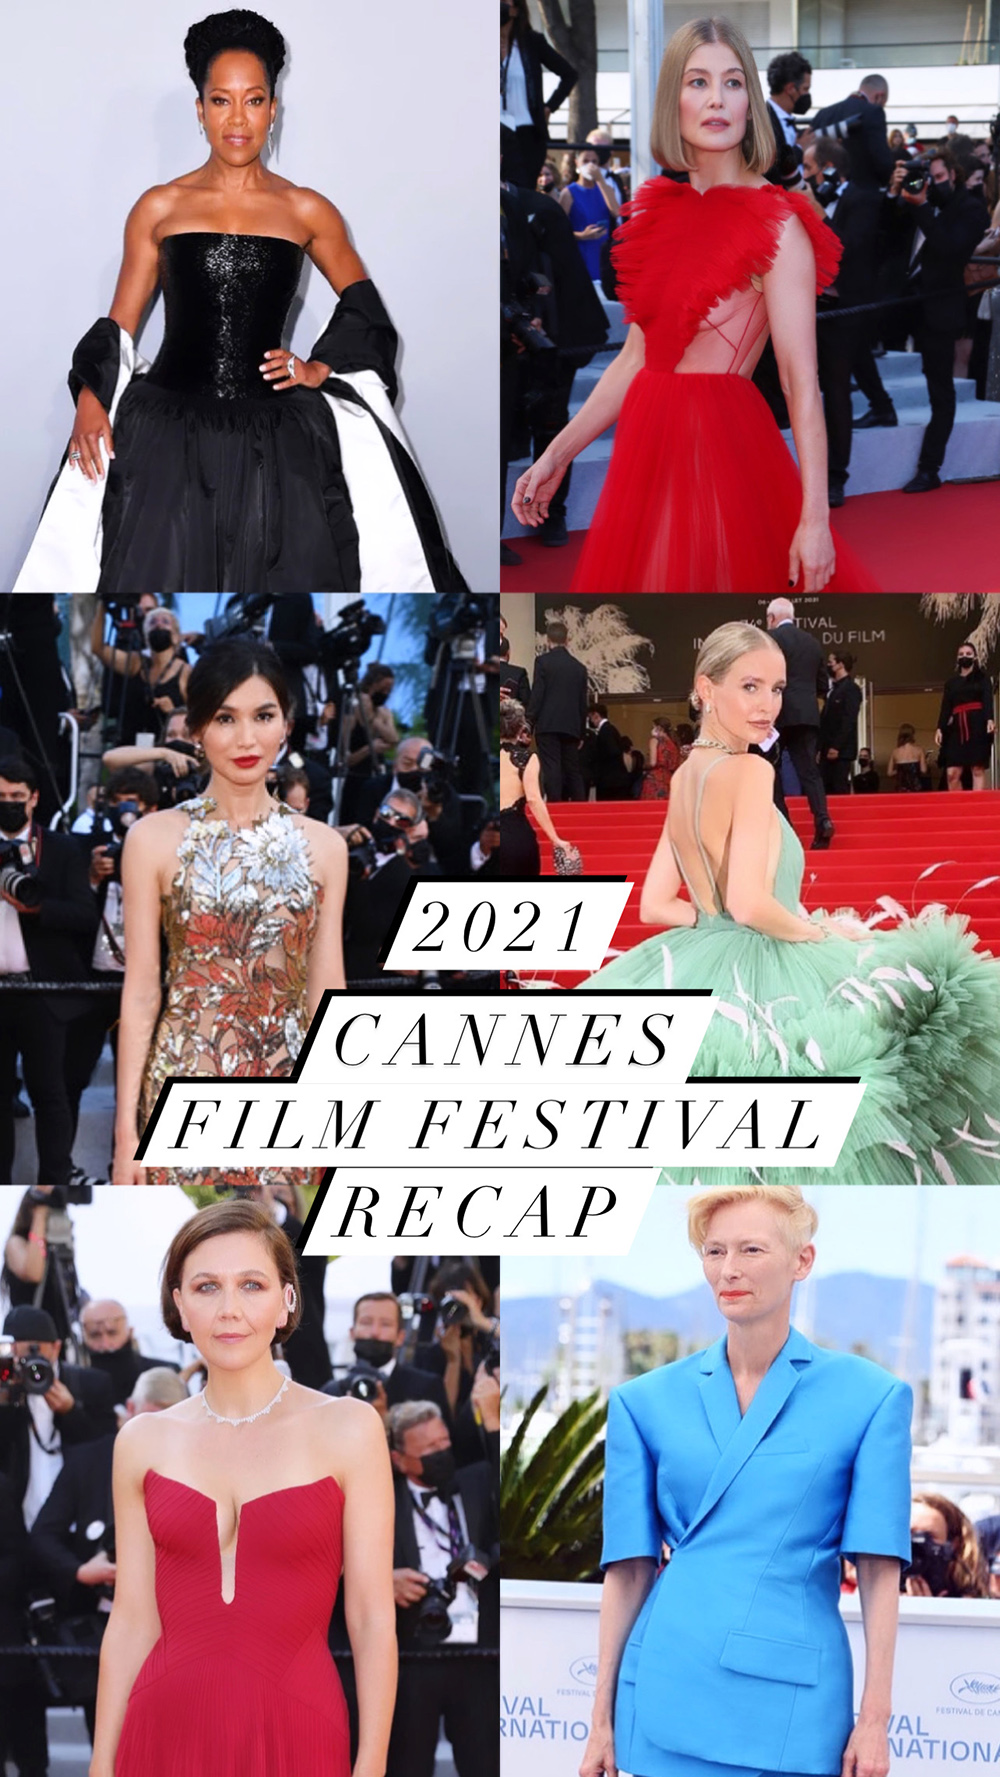 2021 Cannes Film Festival Fashion Overview I The Best and Worst Looks for the Two-Week Event #cannesfilmfestival #redcarpetfashion #fashionstyle